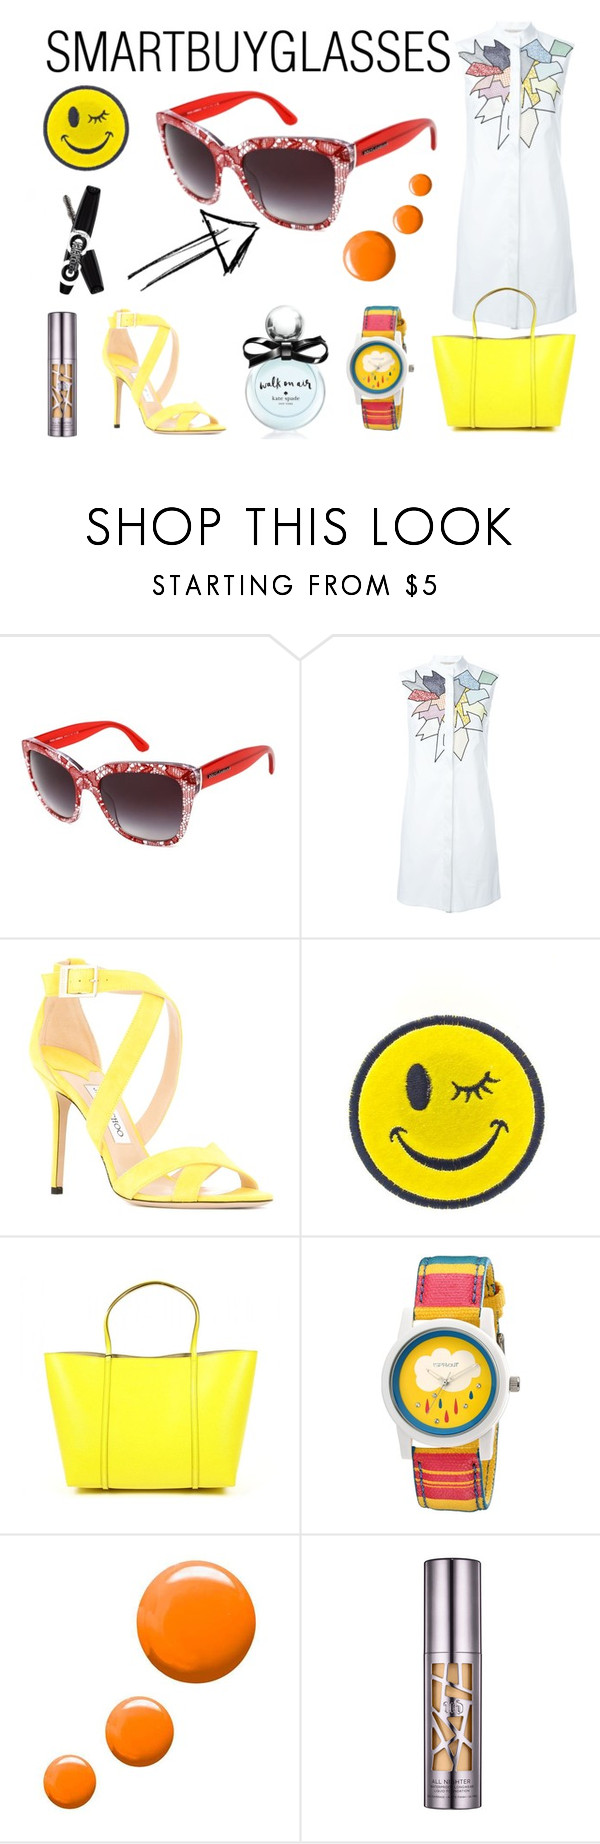 """""""SMARTBUYGLASSES contest"""" by vlahos-kron ❤ liked on Polyvore featuring Dolce&Gabbana, Christopher Kane, Jimmy Choo, Ana Accessories, Sprout, Topshop, Urban Decay, Kate Spade and smartbuyglasses"""